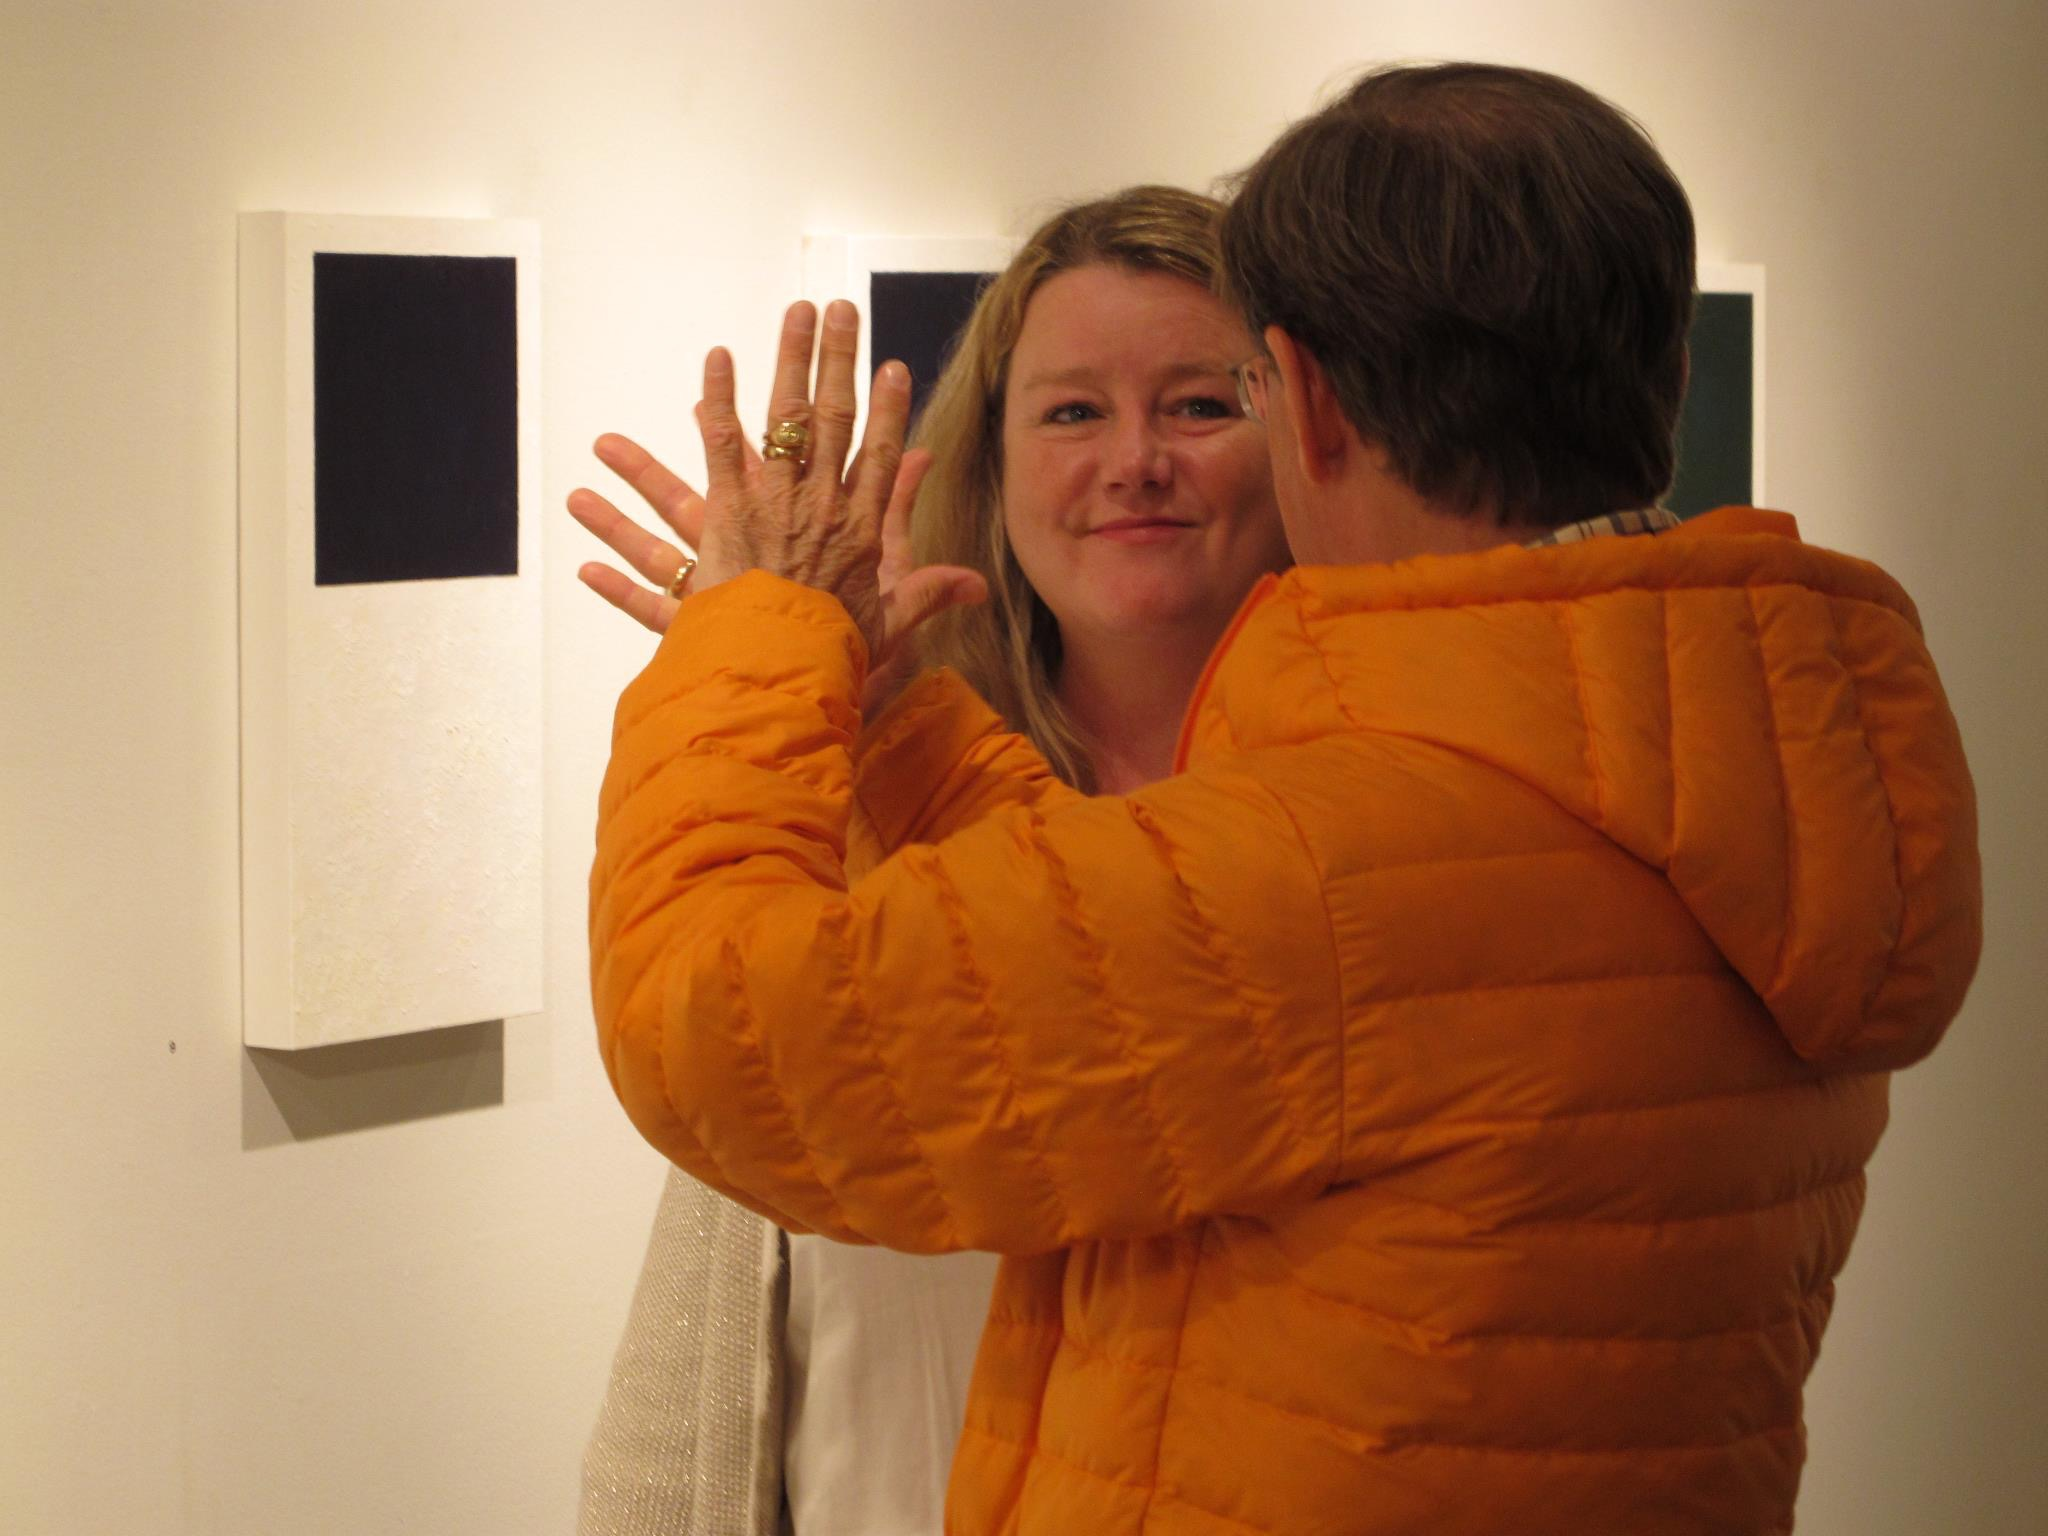 """Joanie visiting with a friend during the opening of her """"Windows"""" exhibit at Iowa Contemporary Art Gallery."""